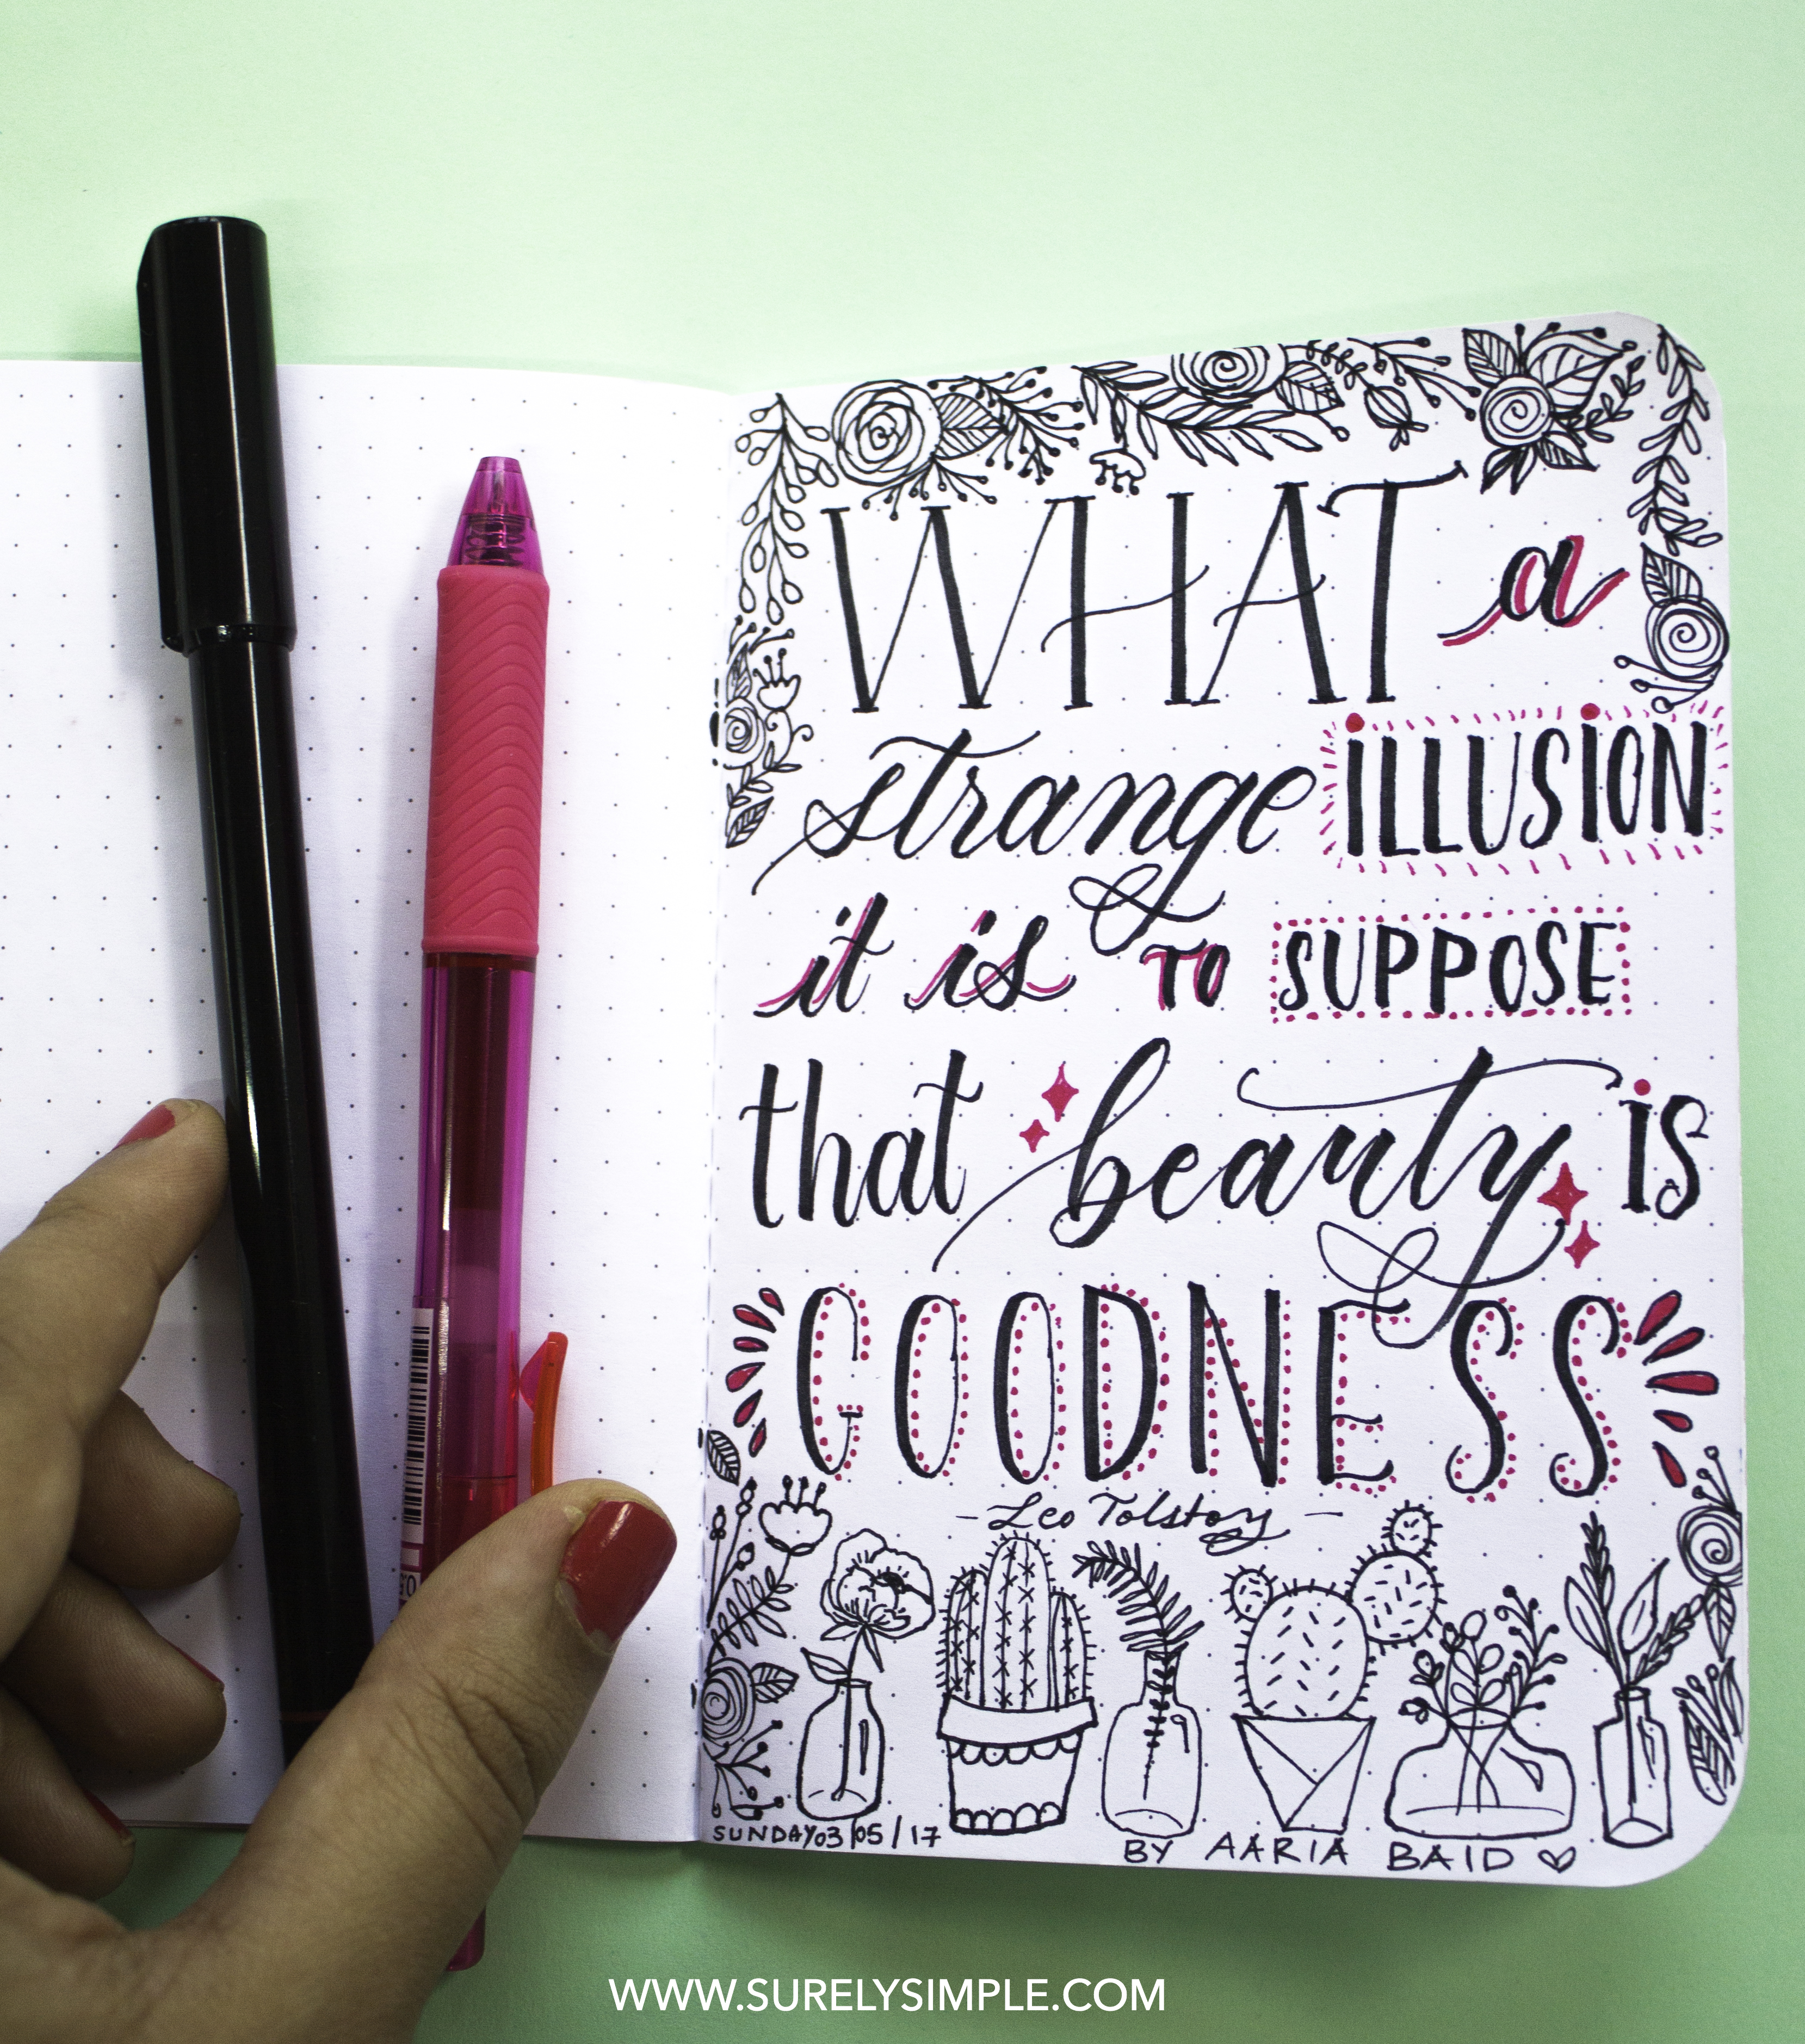 New Handlettering Quotes Project! daily quote series on surelysimple.com instagram.com/surelysimpleblog